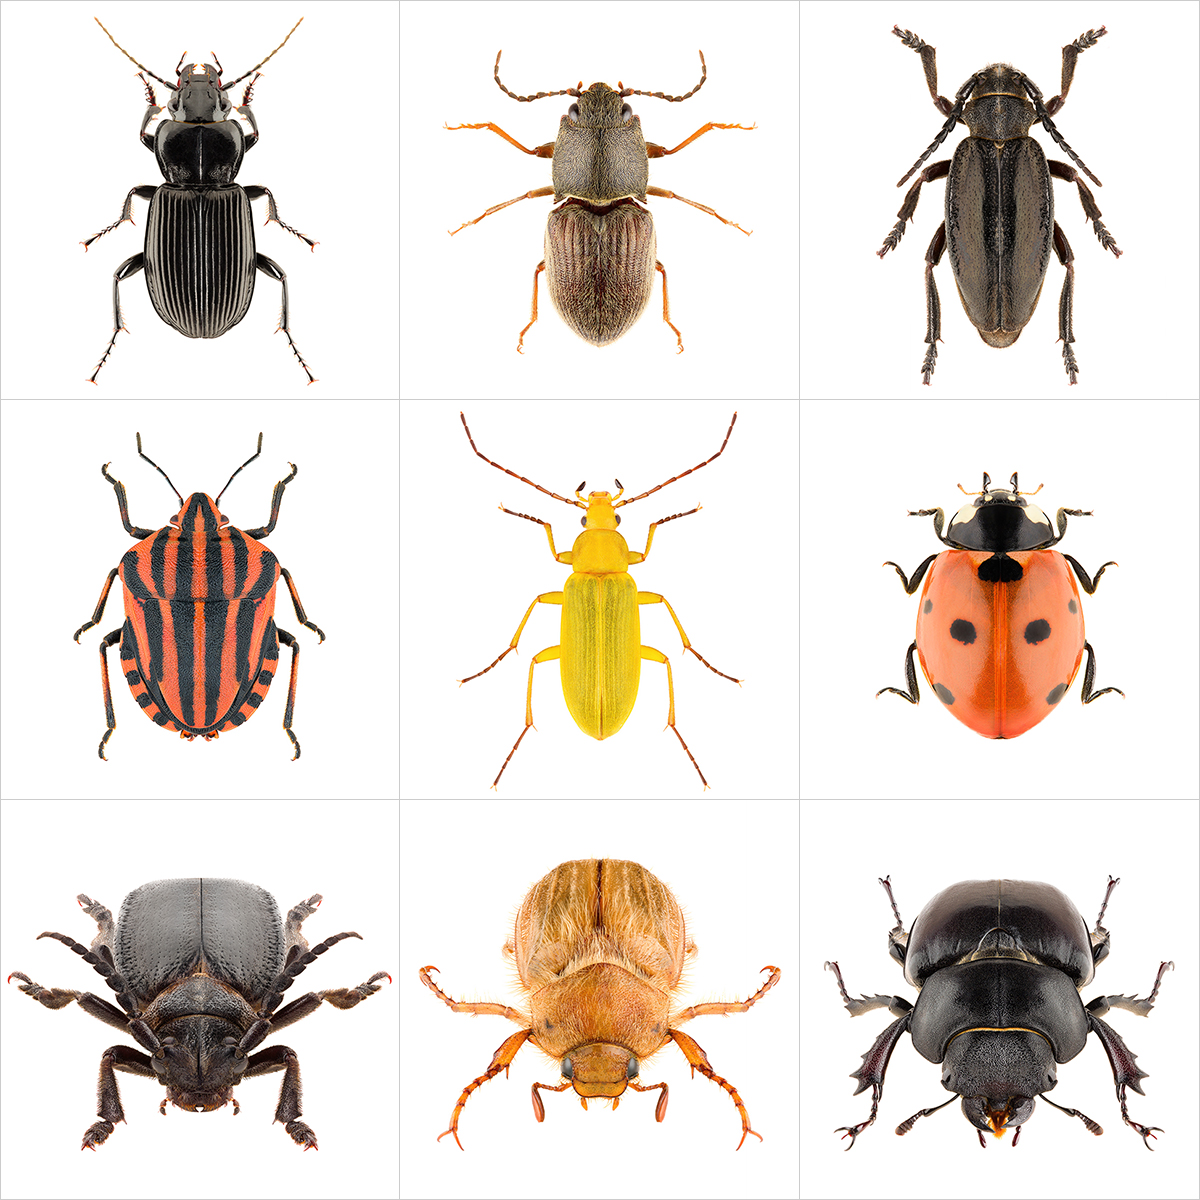 These were the Insects II 000 1 - 2020 - These were the Insects. II